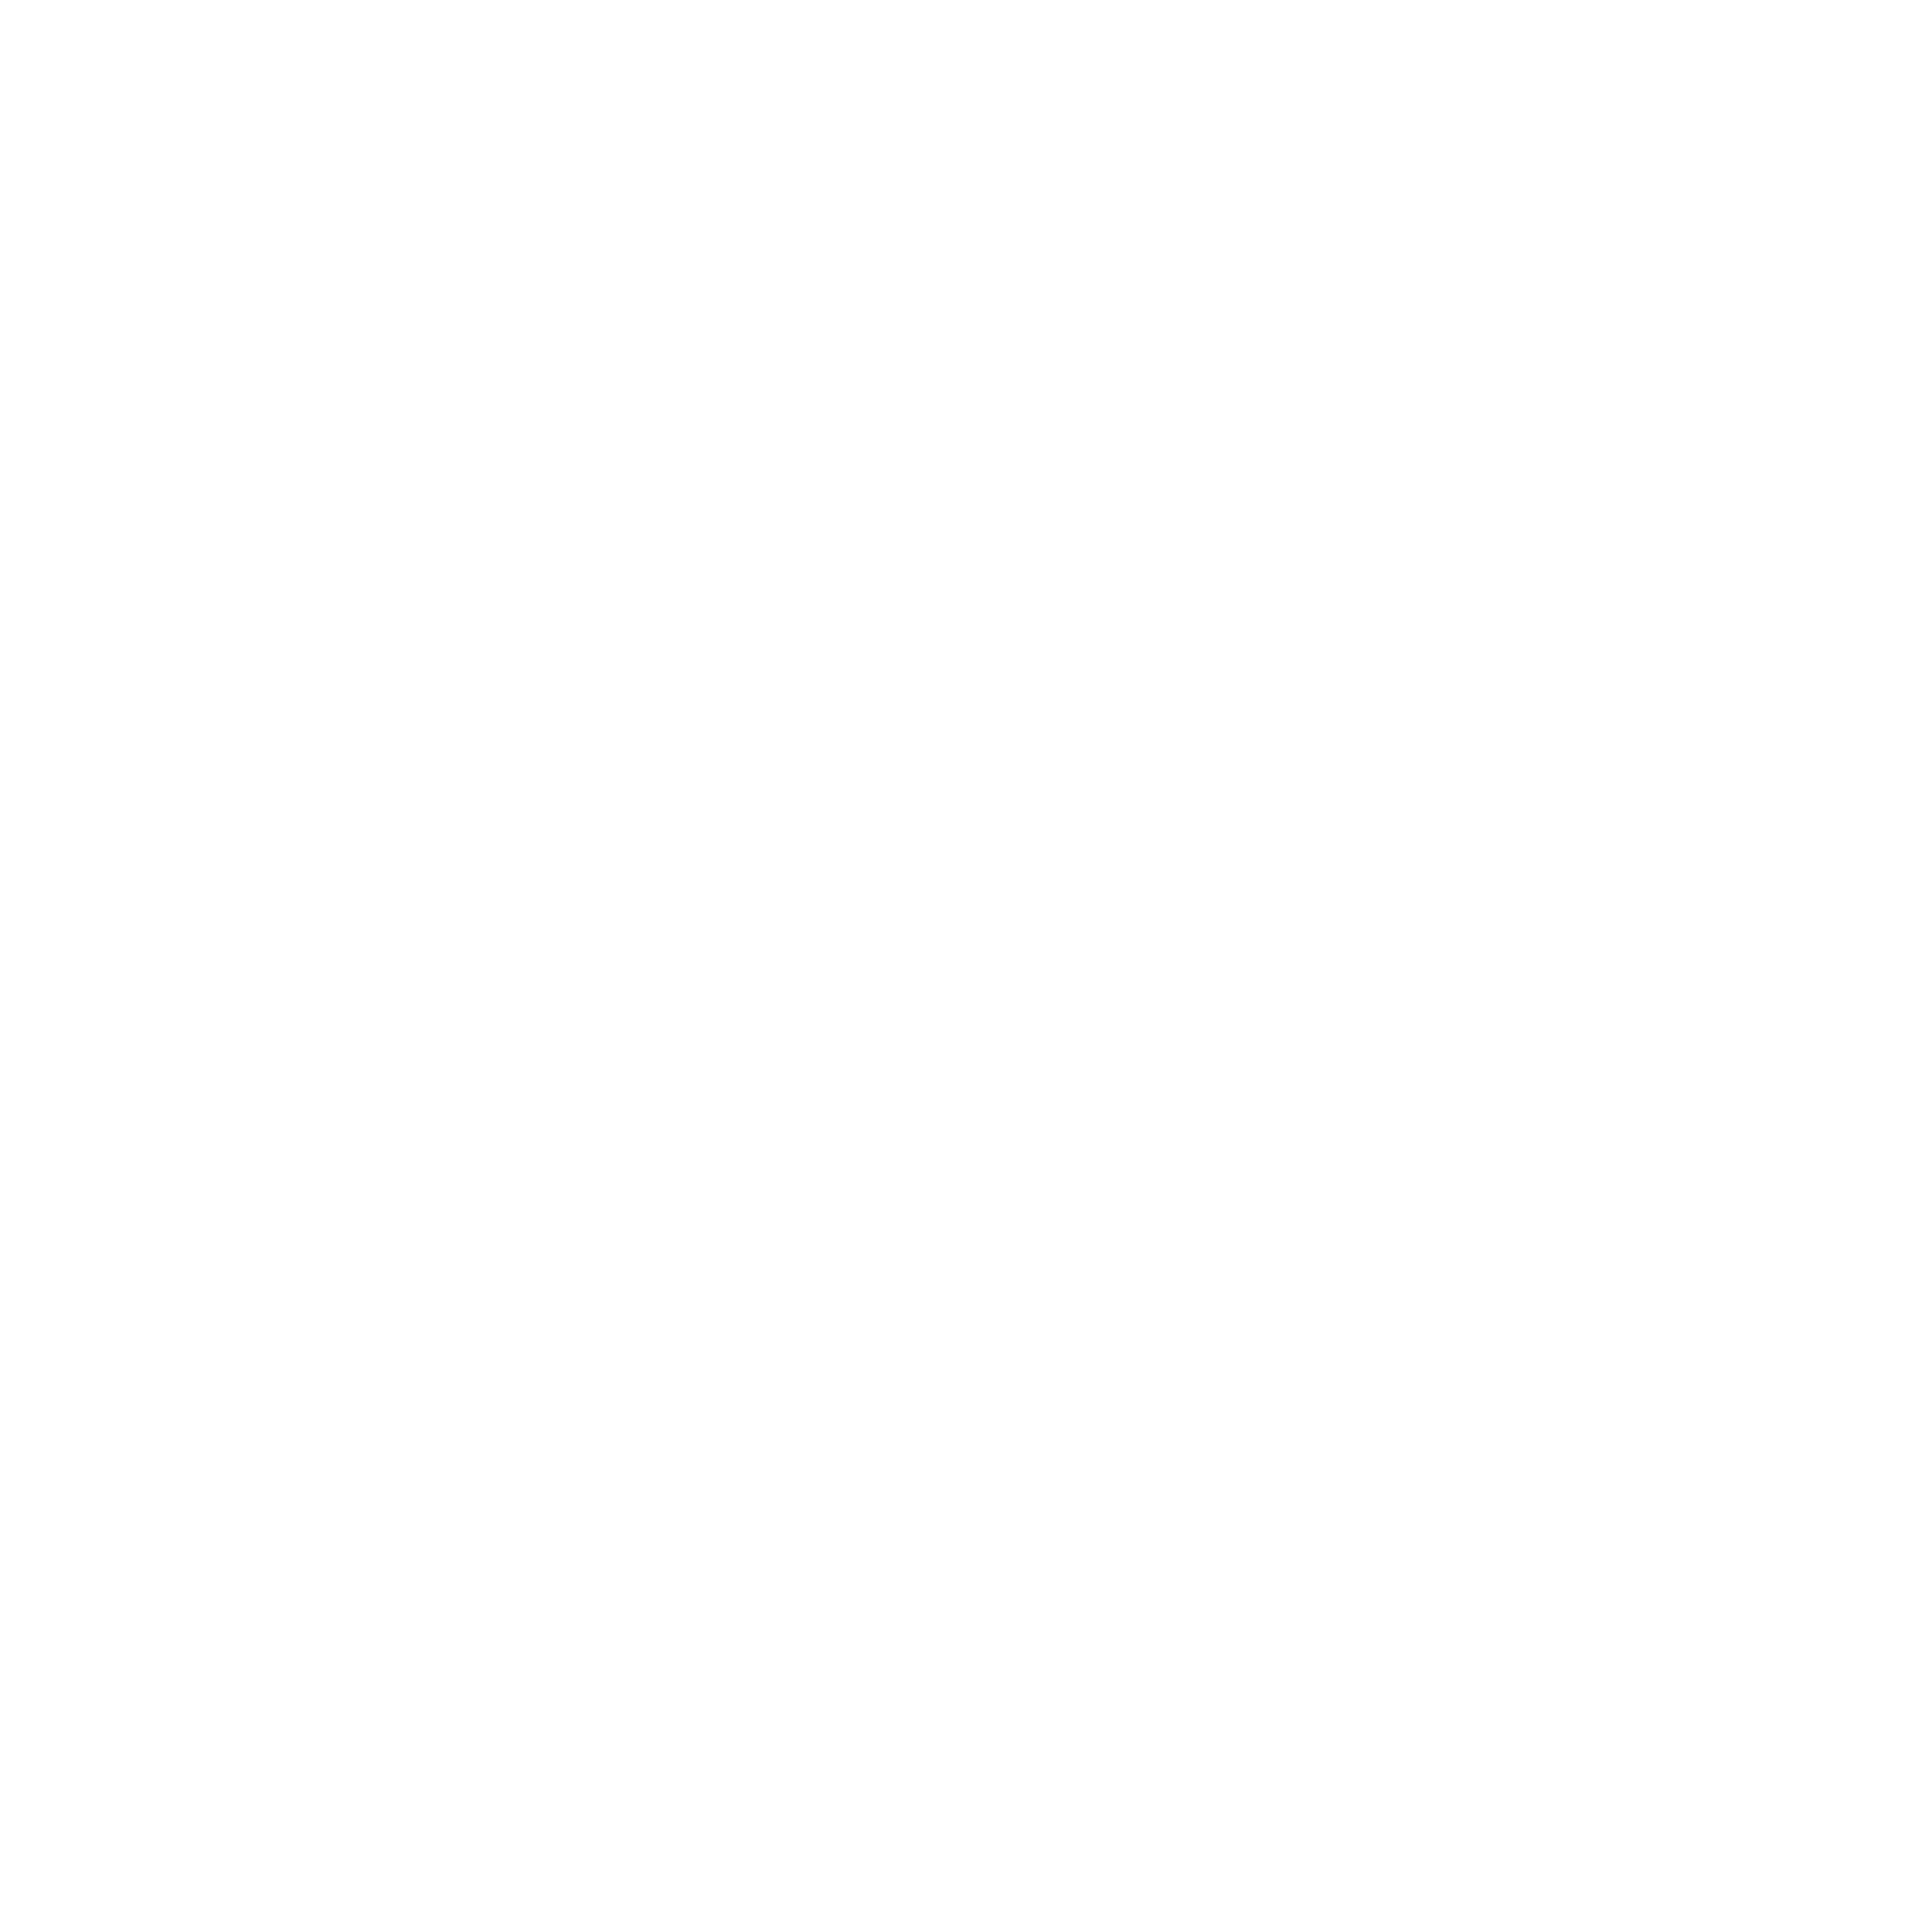 teammatters.PNG